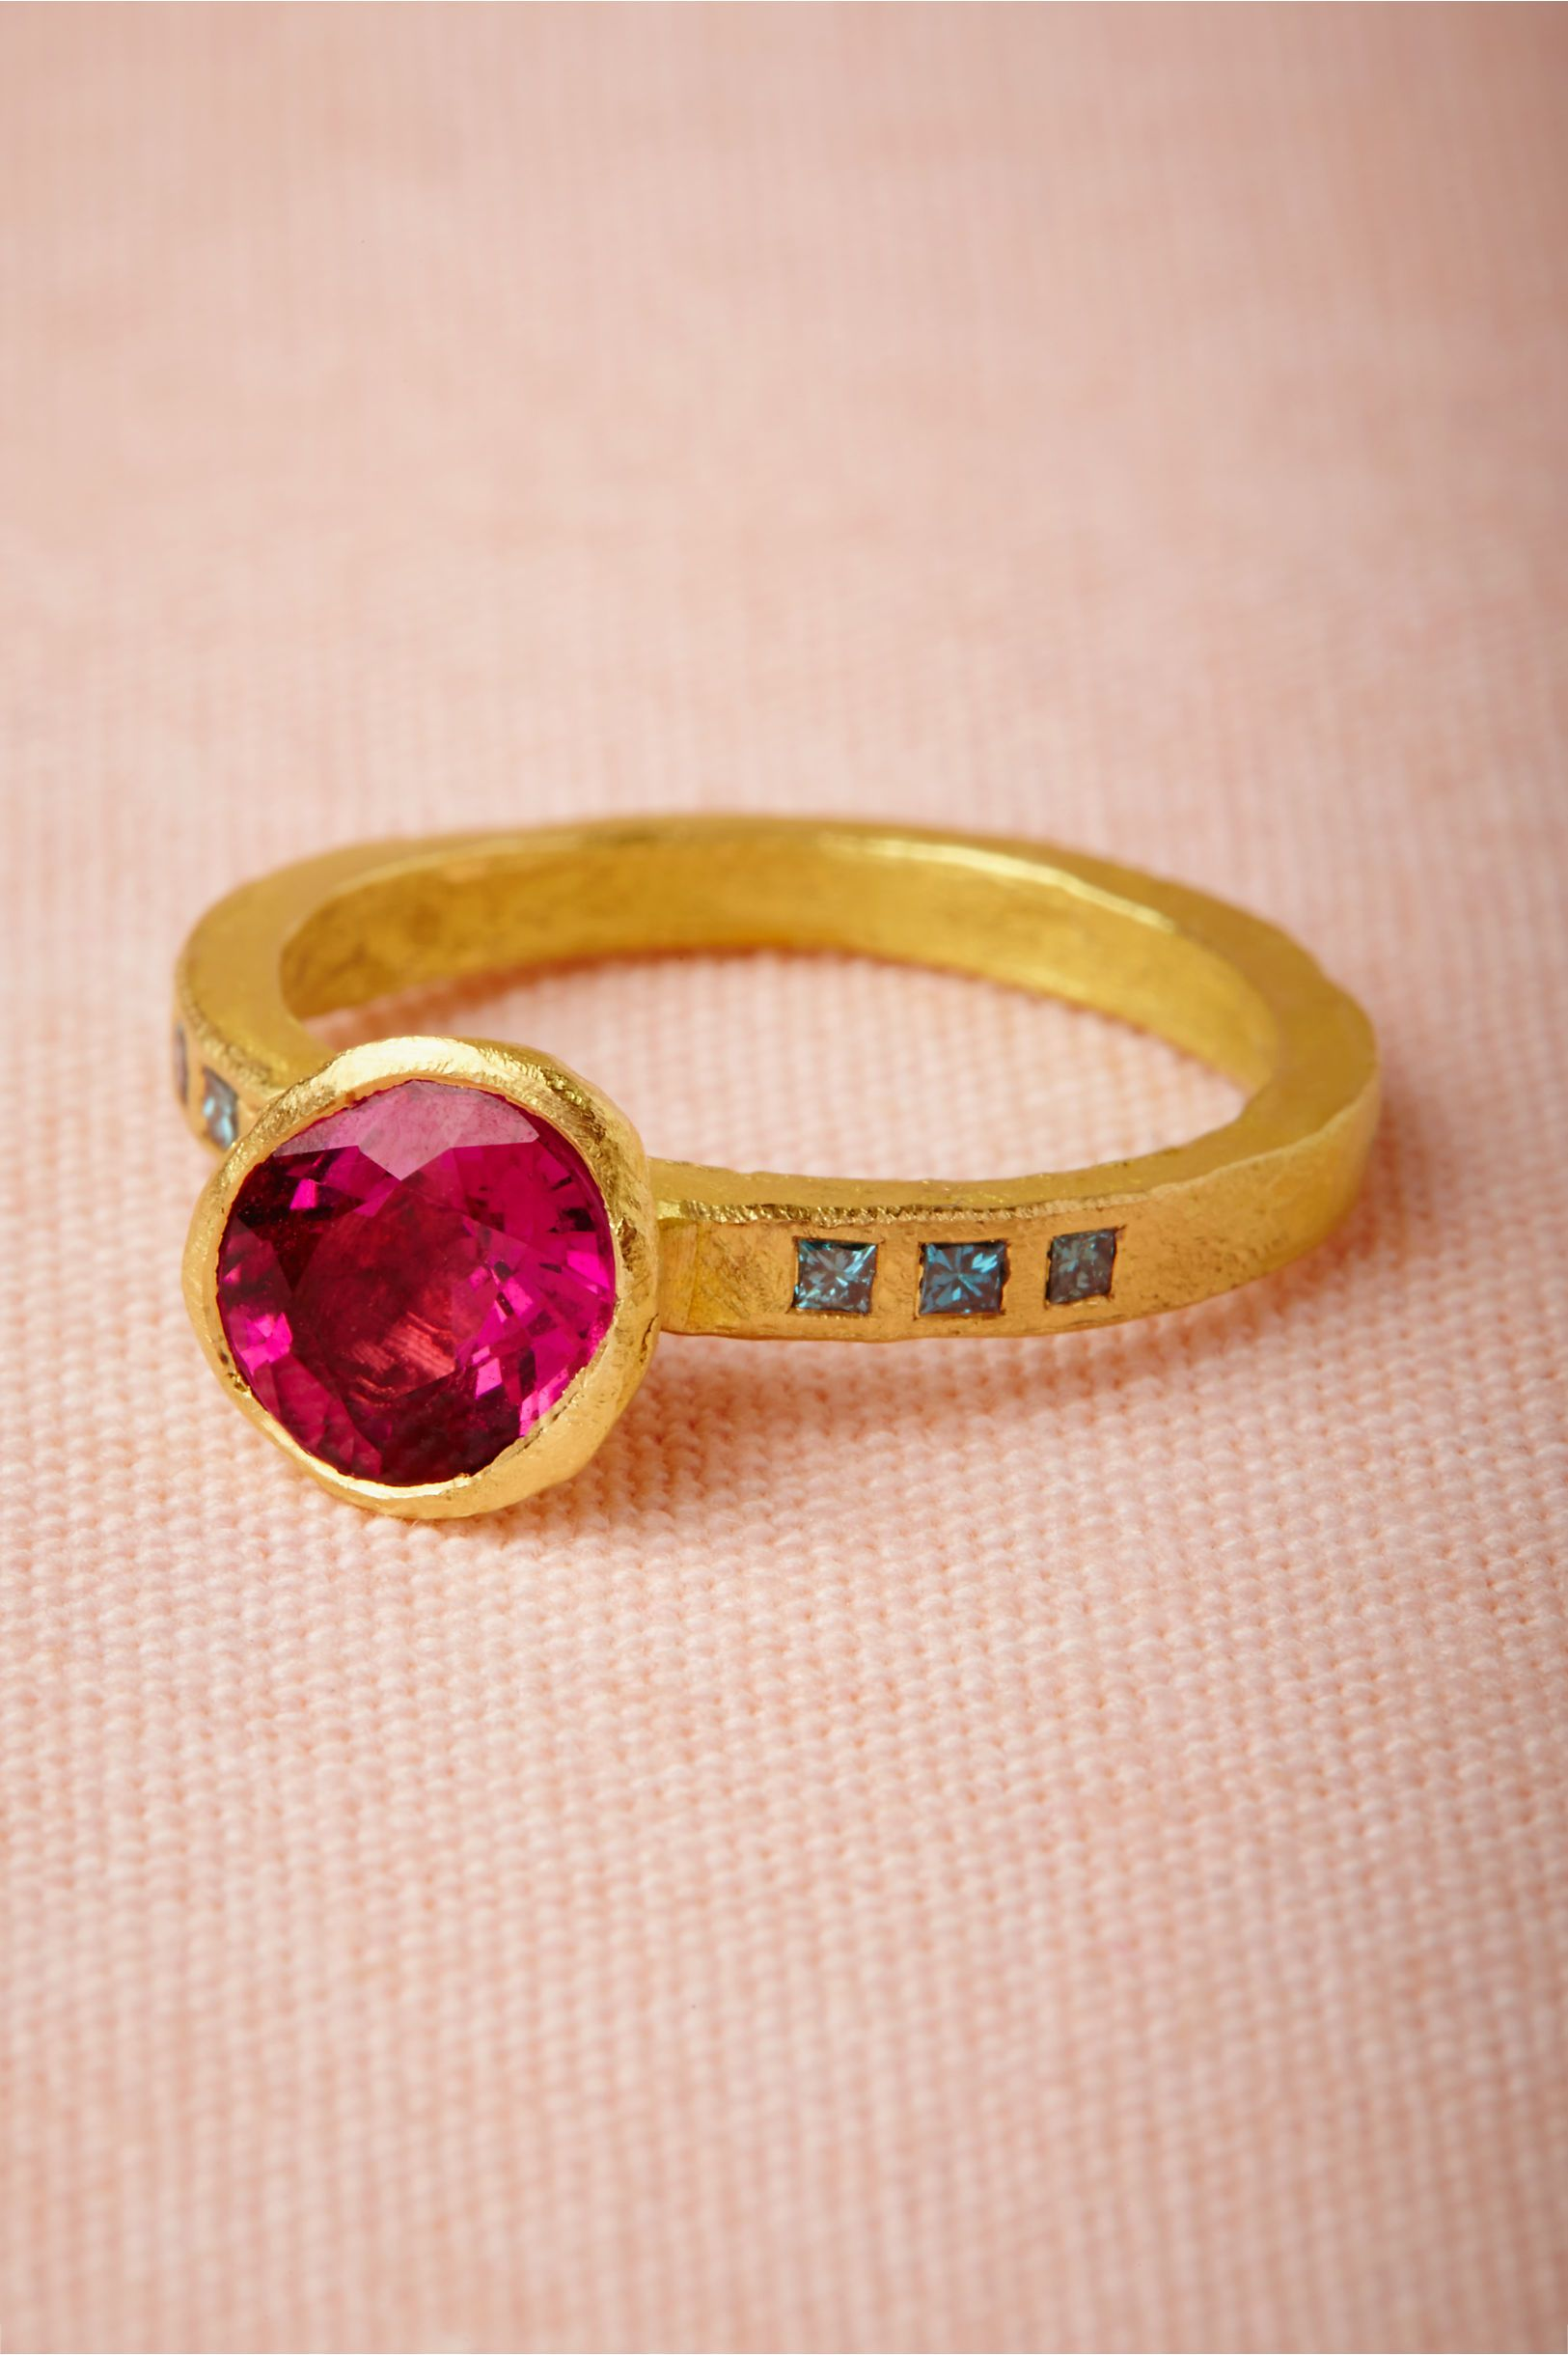 Vermilion Ring in Shoes & Accessories Jewelry Rings at BHLDN